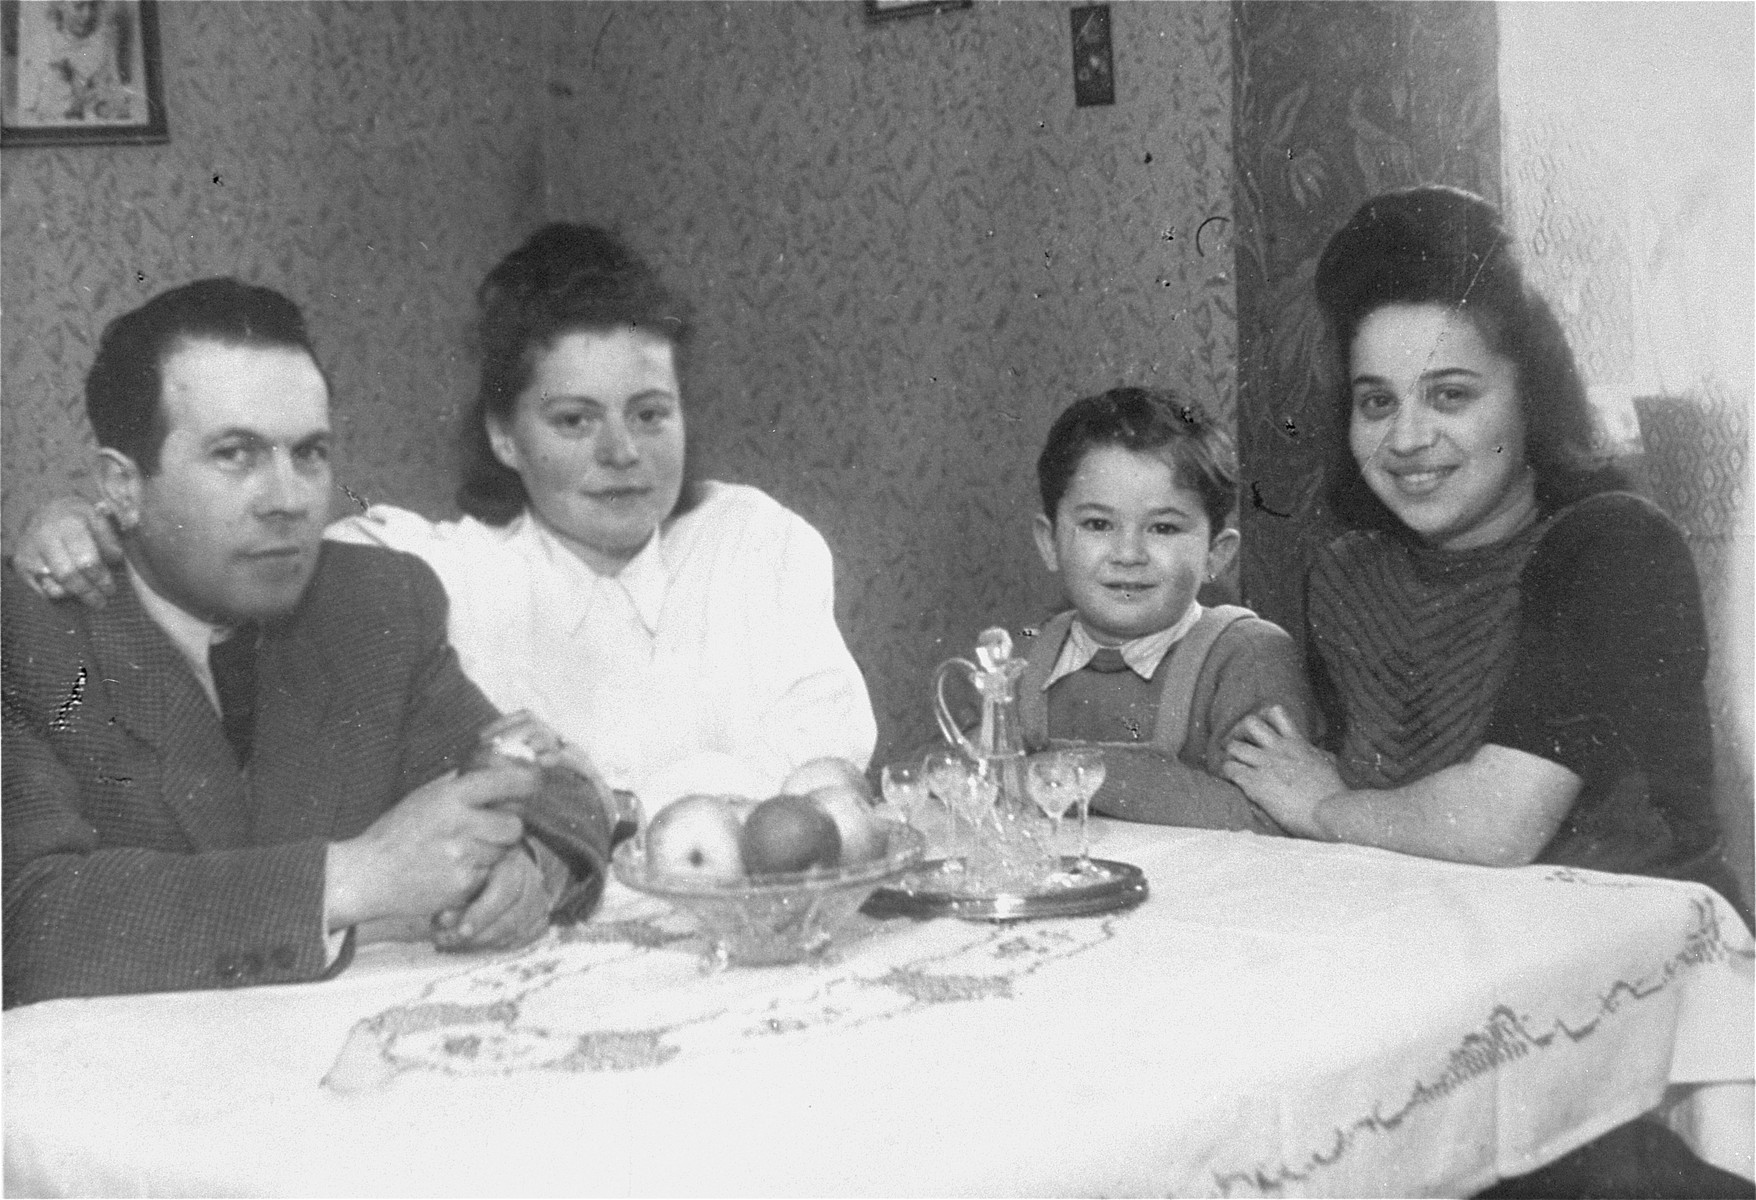 Jurek Kaiser sits at a table with friends and relatives in the Bergen-Belsen displaced persons camp.  Pictured from left to right are Shmulek and Lola Mandelbaum, Jurek Kaiser, and Mania Zaks (Jurek's aunt).